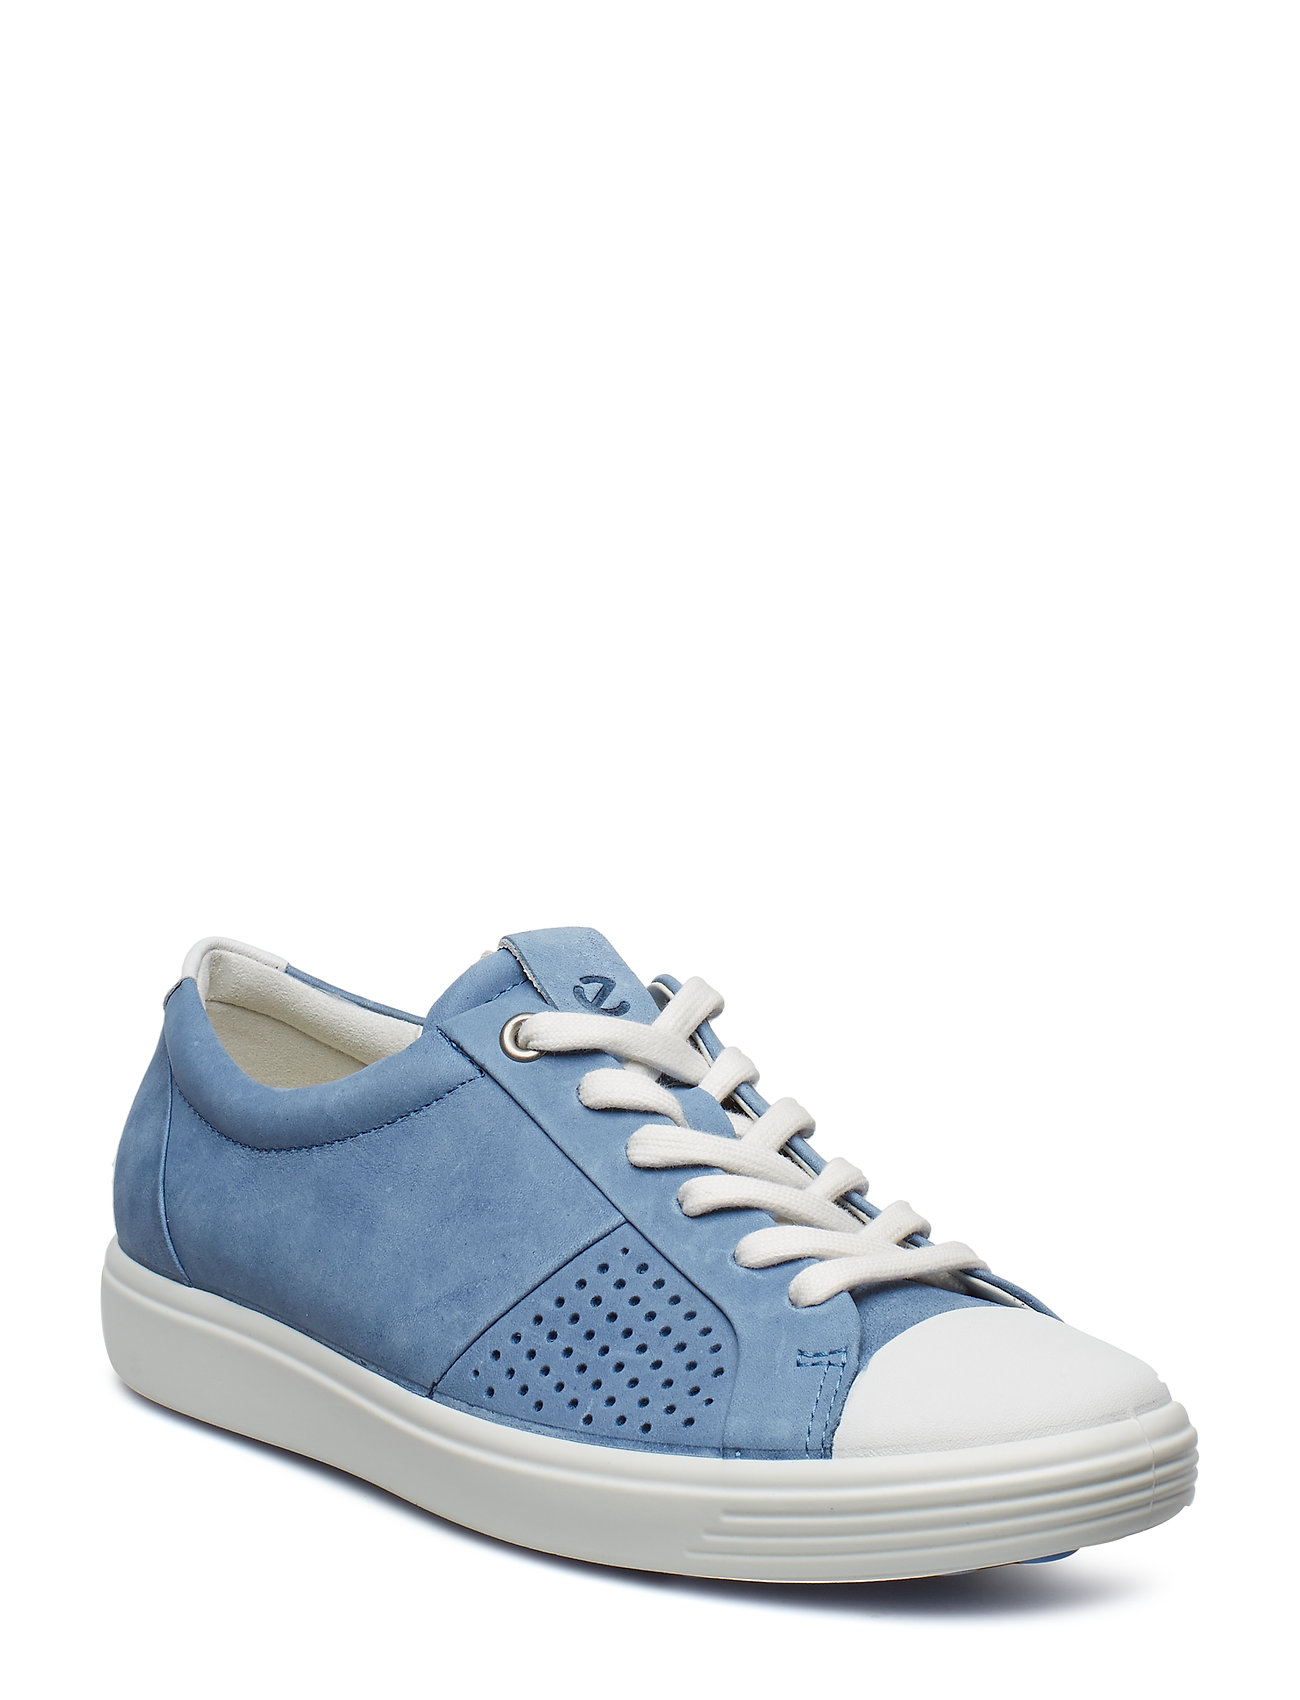 Image of Soft 7 W Low-top Sneakers Blå ECCO (3121457237)